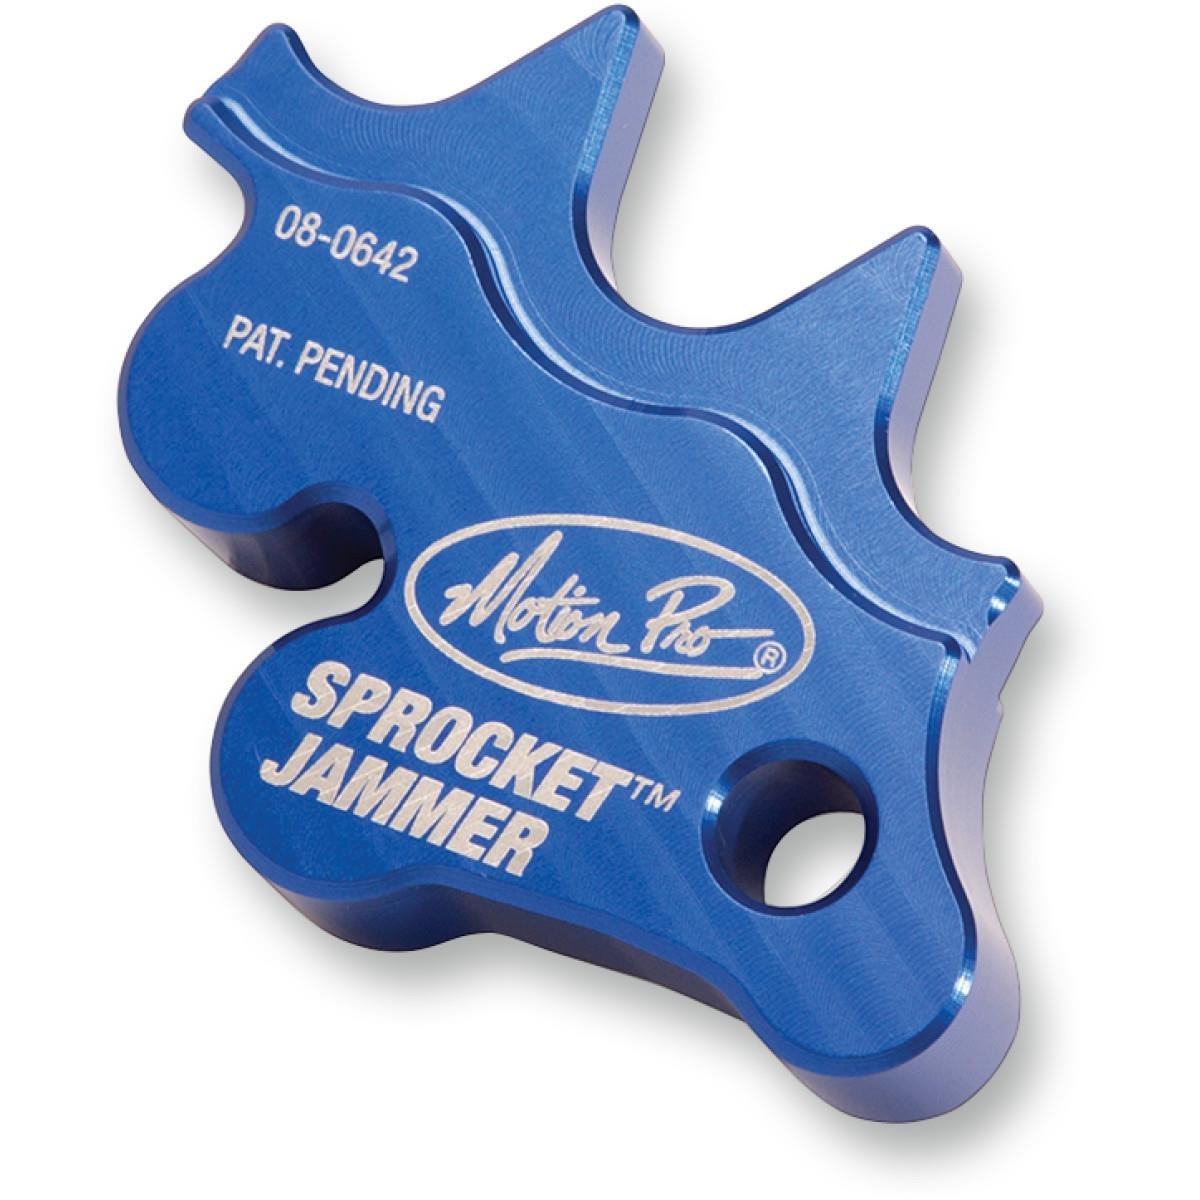 Motion Pro Sprocket Jammer 08-0642 08-0642--AZ1